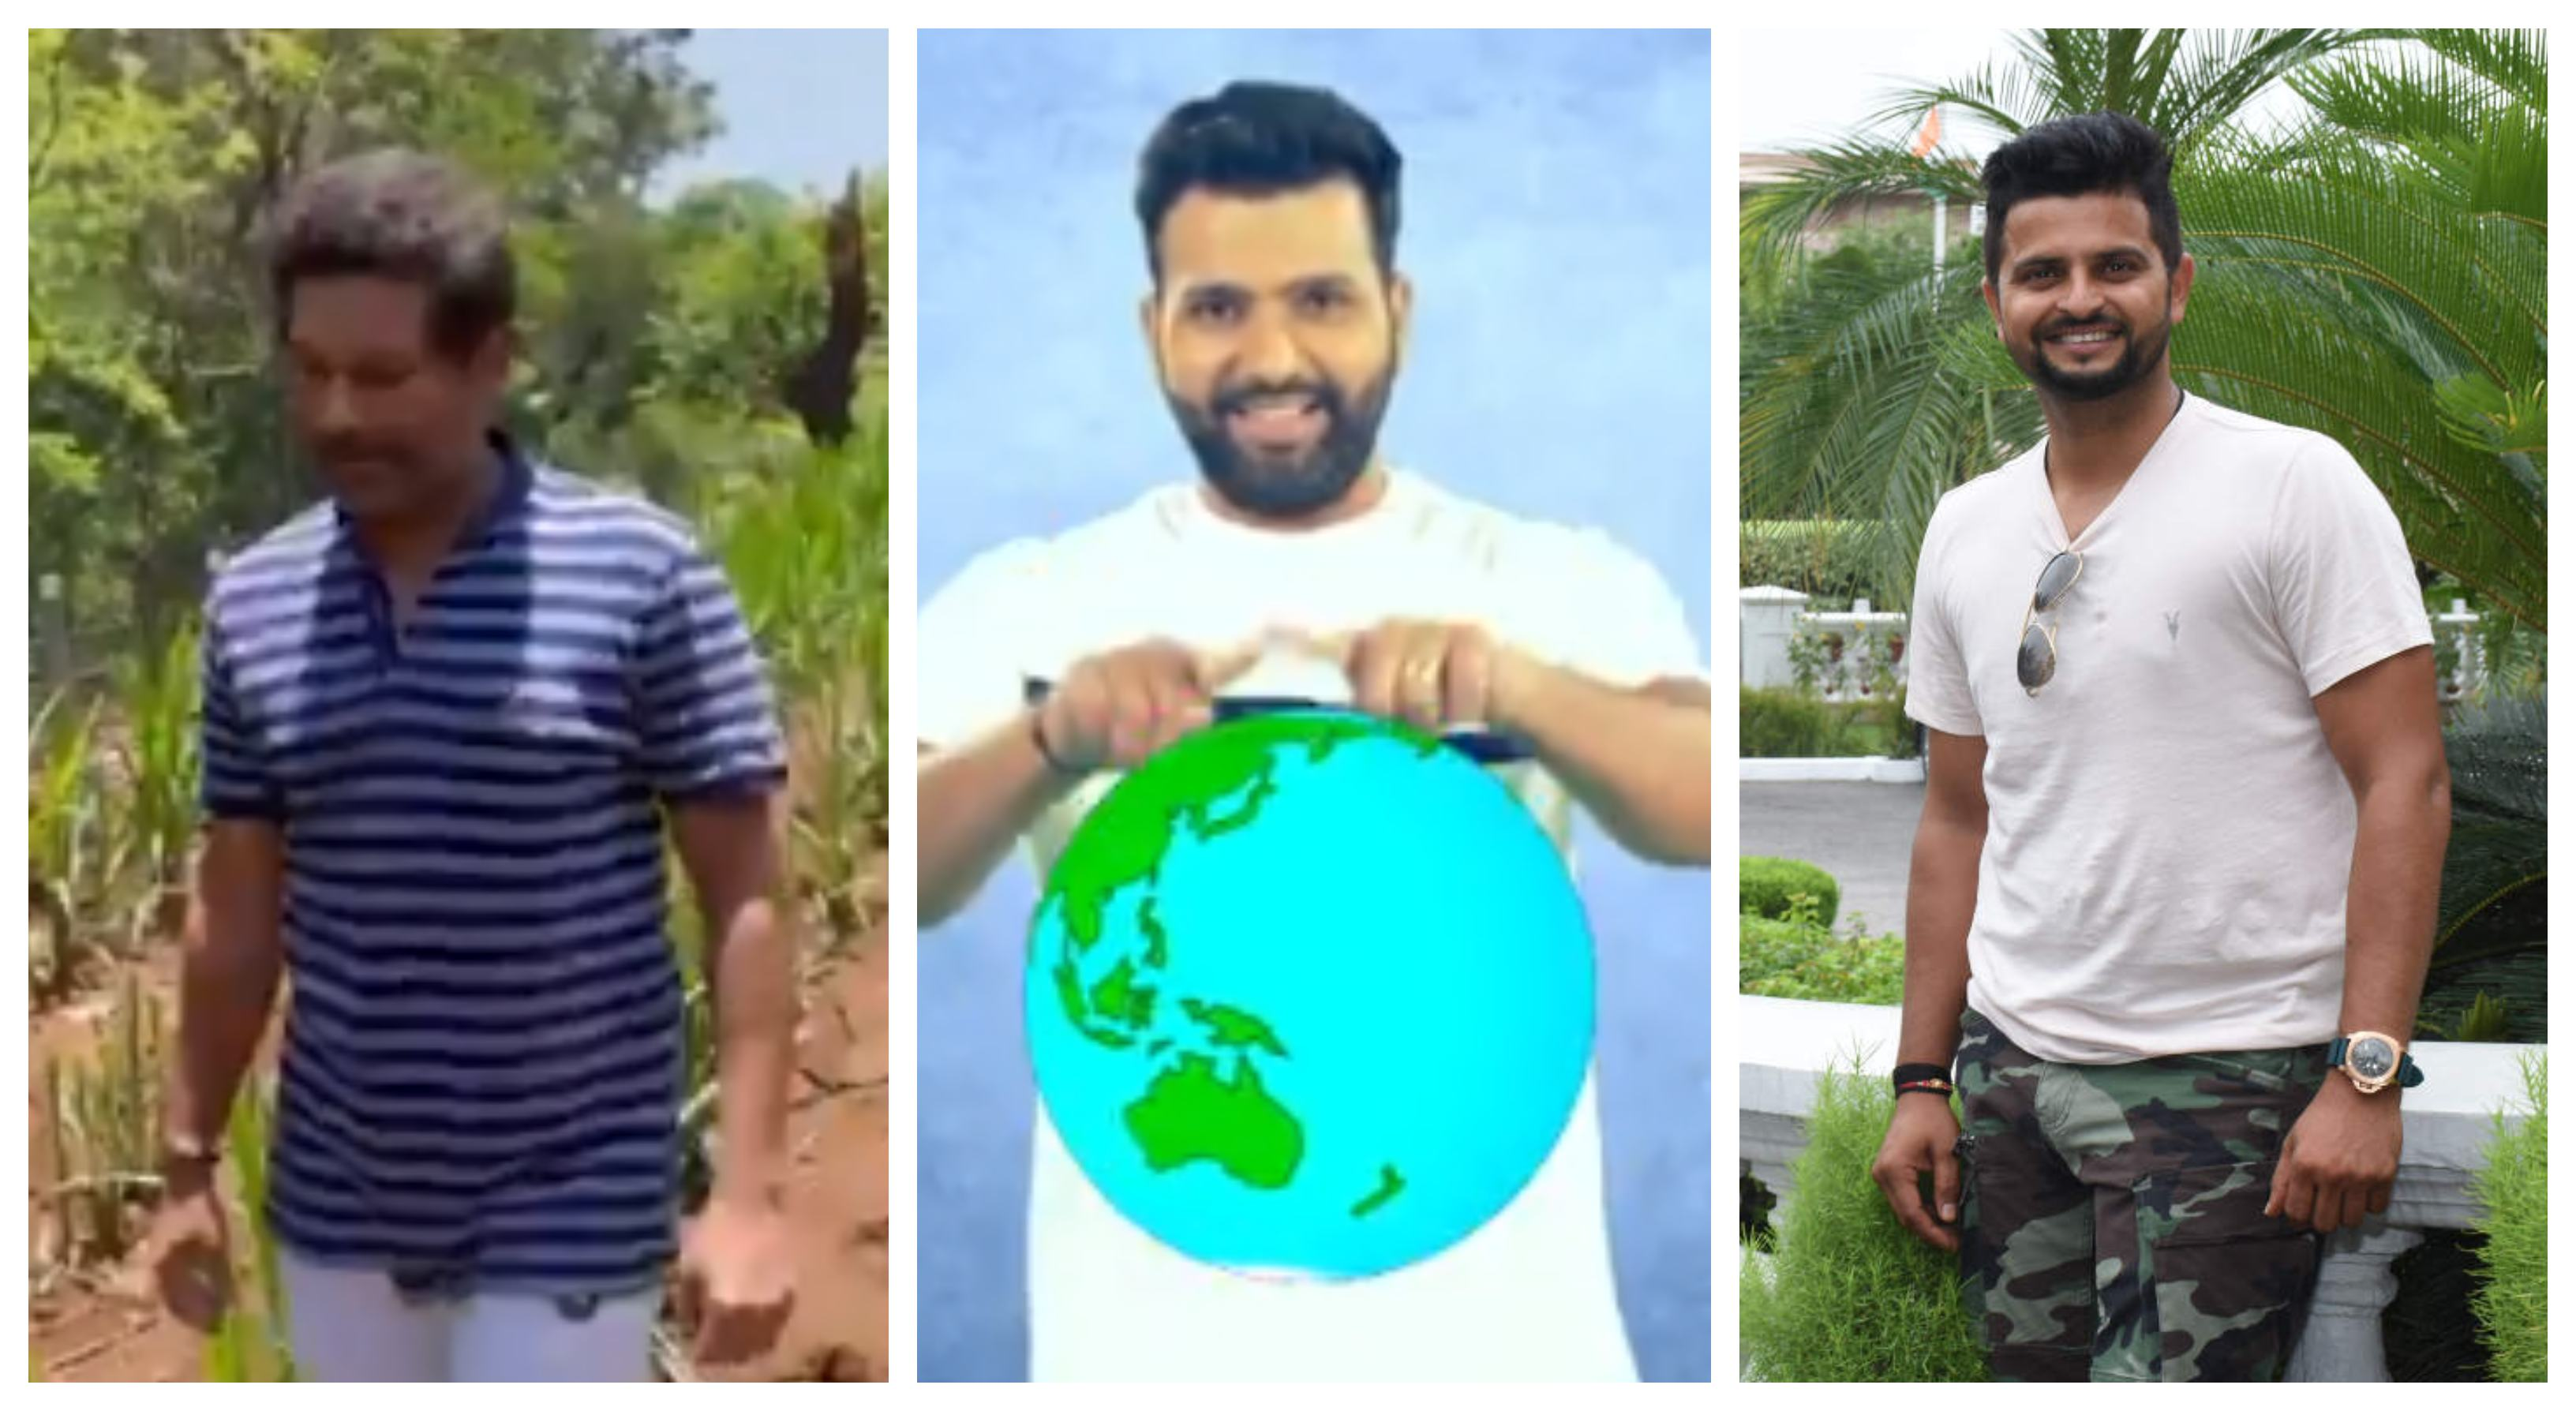 Indian cricketers shared insightful messages on social media | Twitter